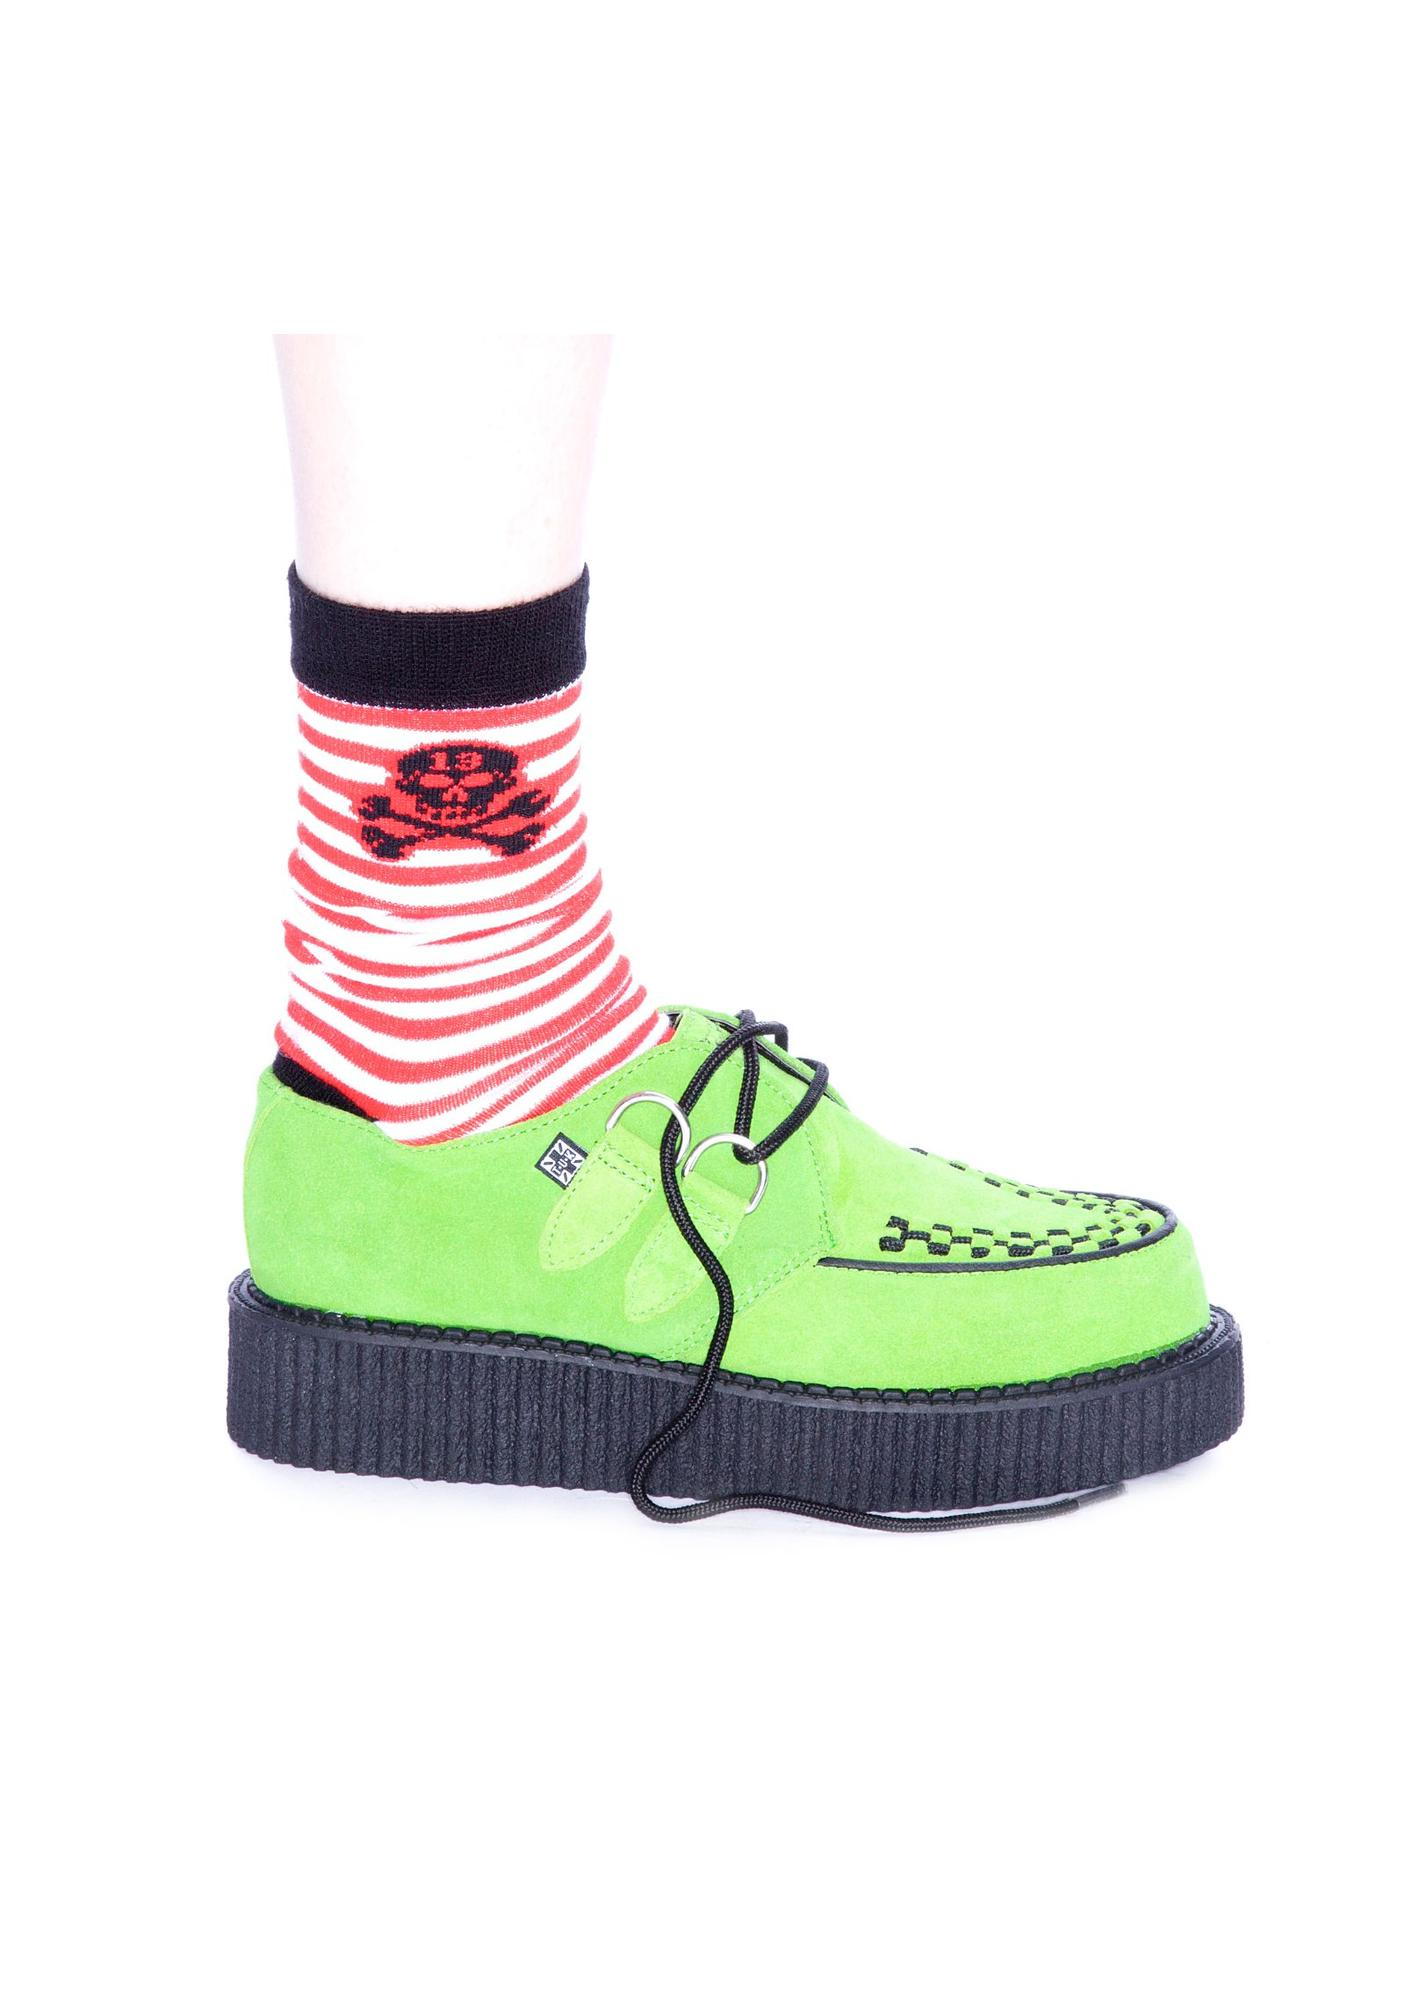 T.U.K. Neon Green Mondo Creeper